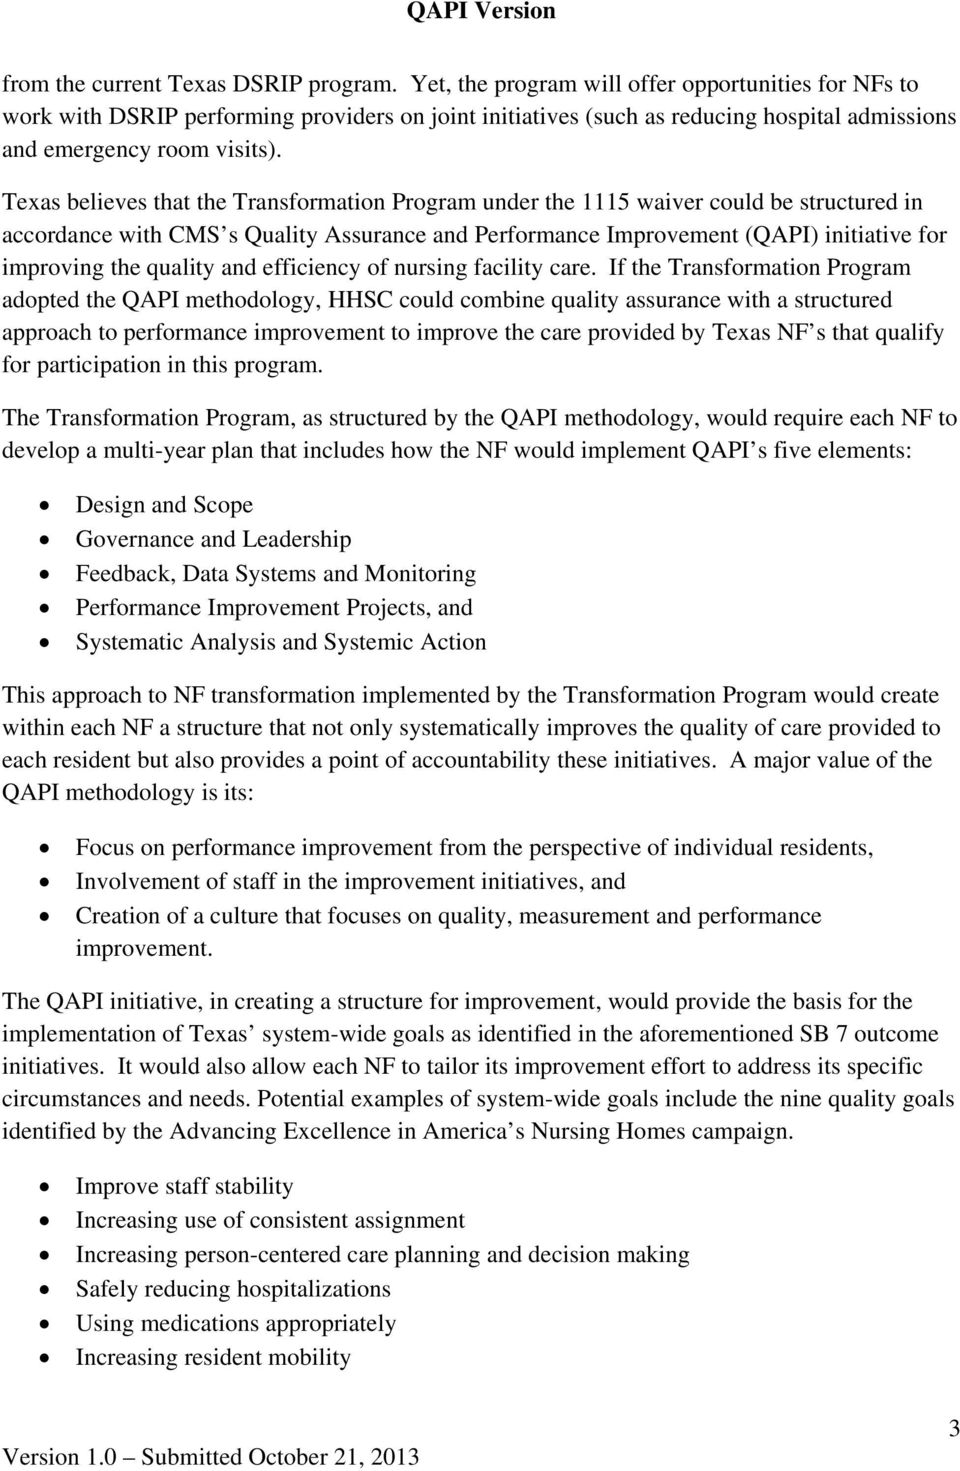 Texas believes that the Transformation Program under the 1115 waiver could be structured in accordance with CMS s Quality Assurance and Performance Improvement (QAPI) initiative for improving the